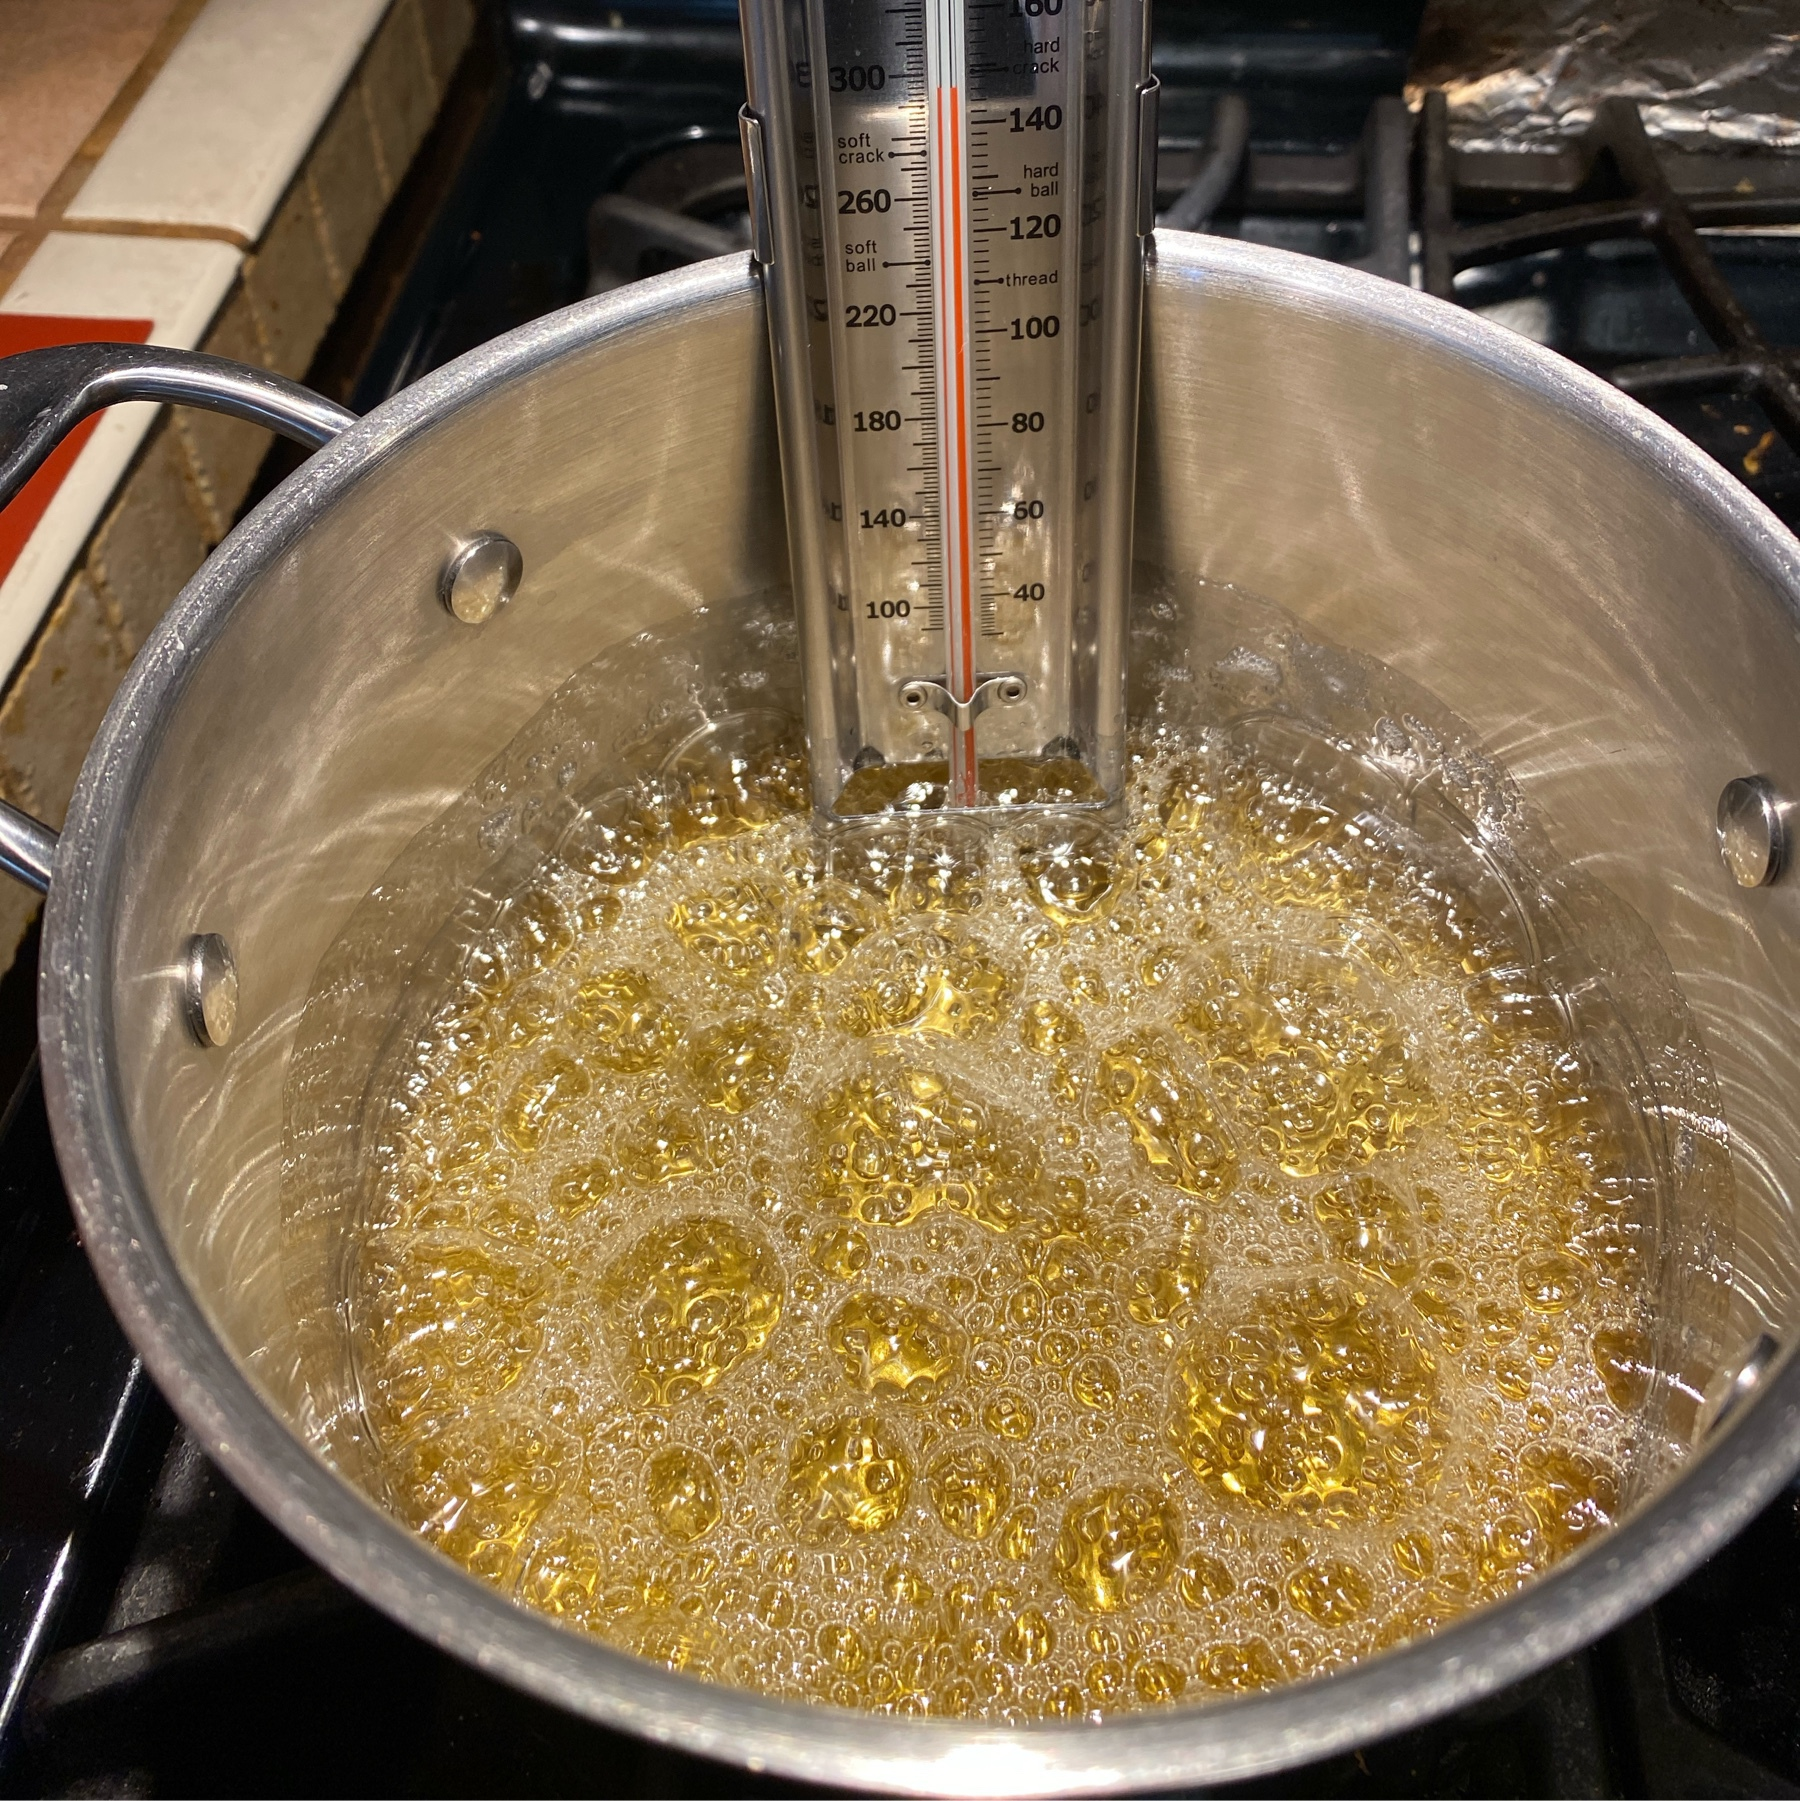 boling sugar mixture a gold color, almost 300F